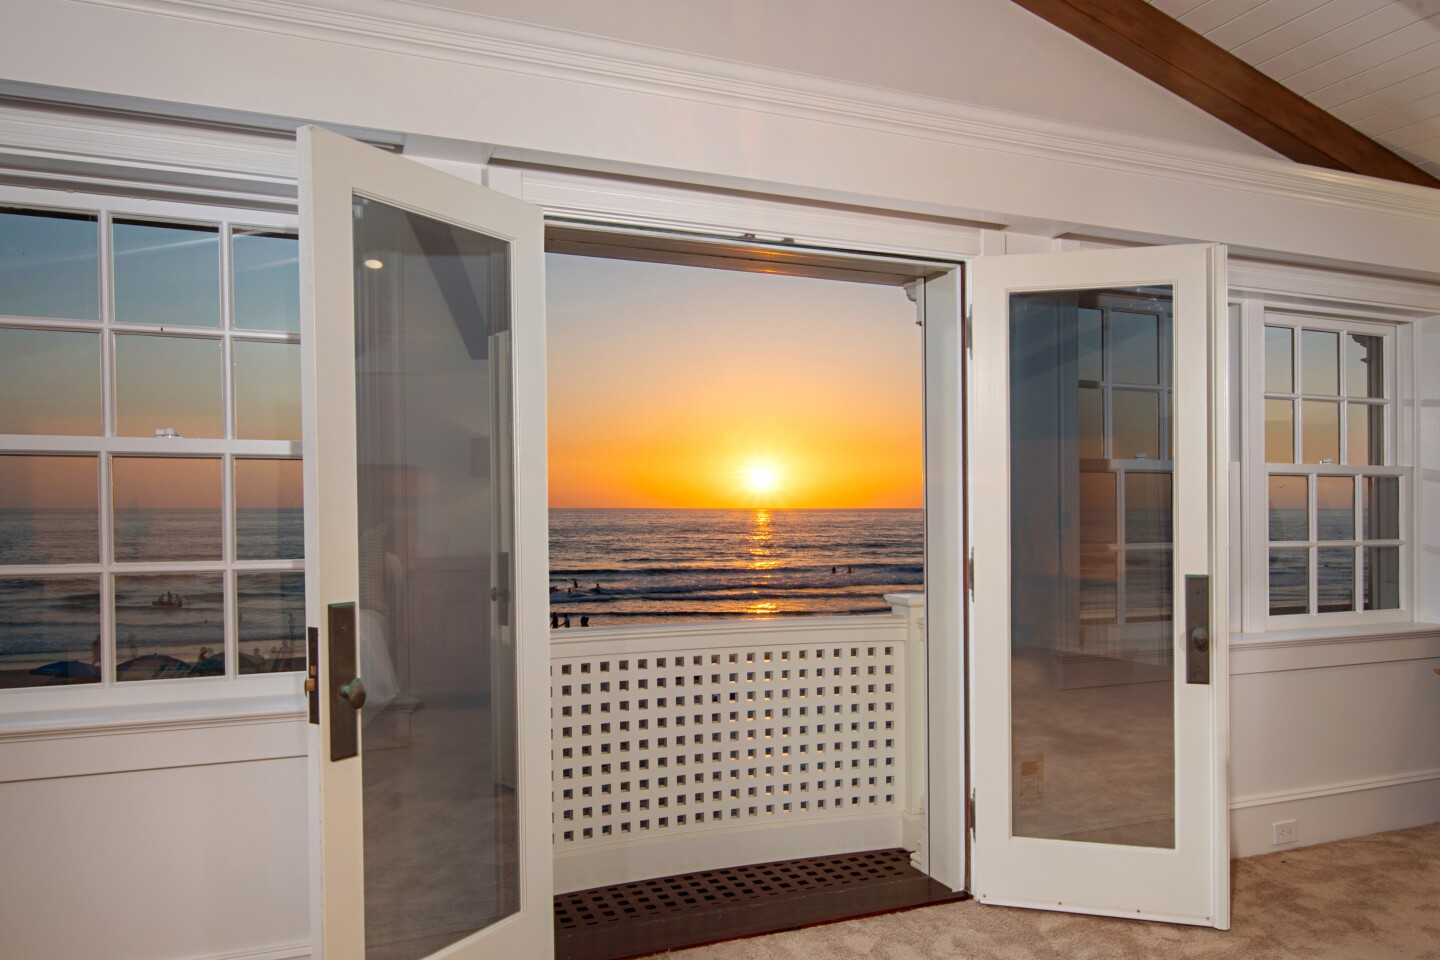 1802 Ocean Front, Del Mar sold for $16 million in March